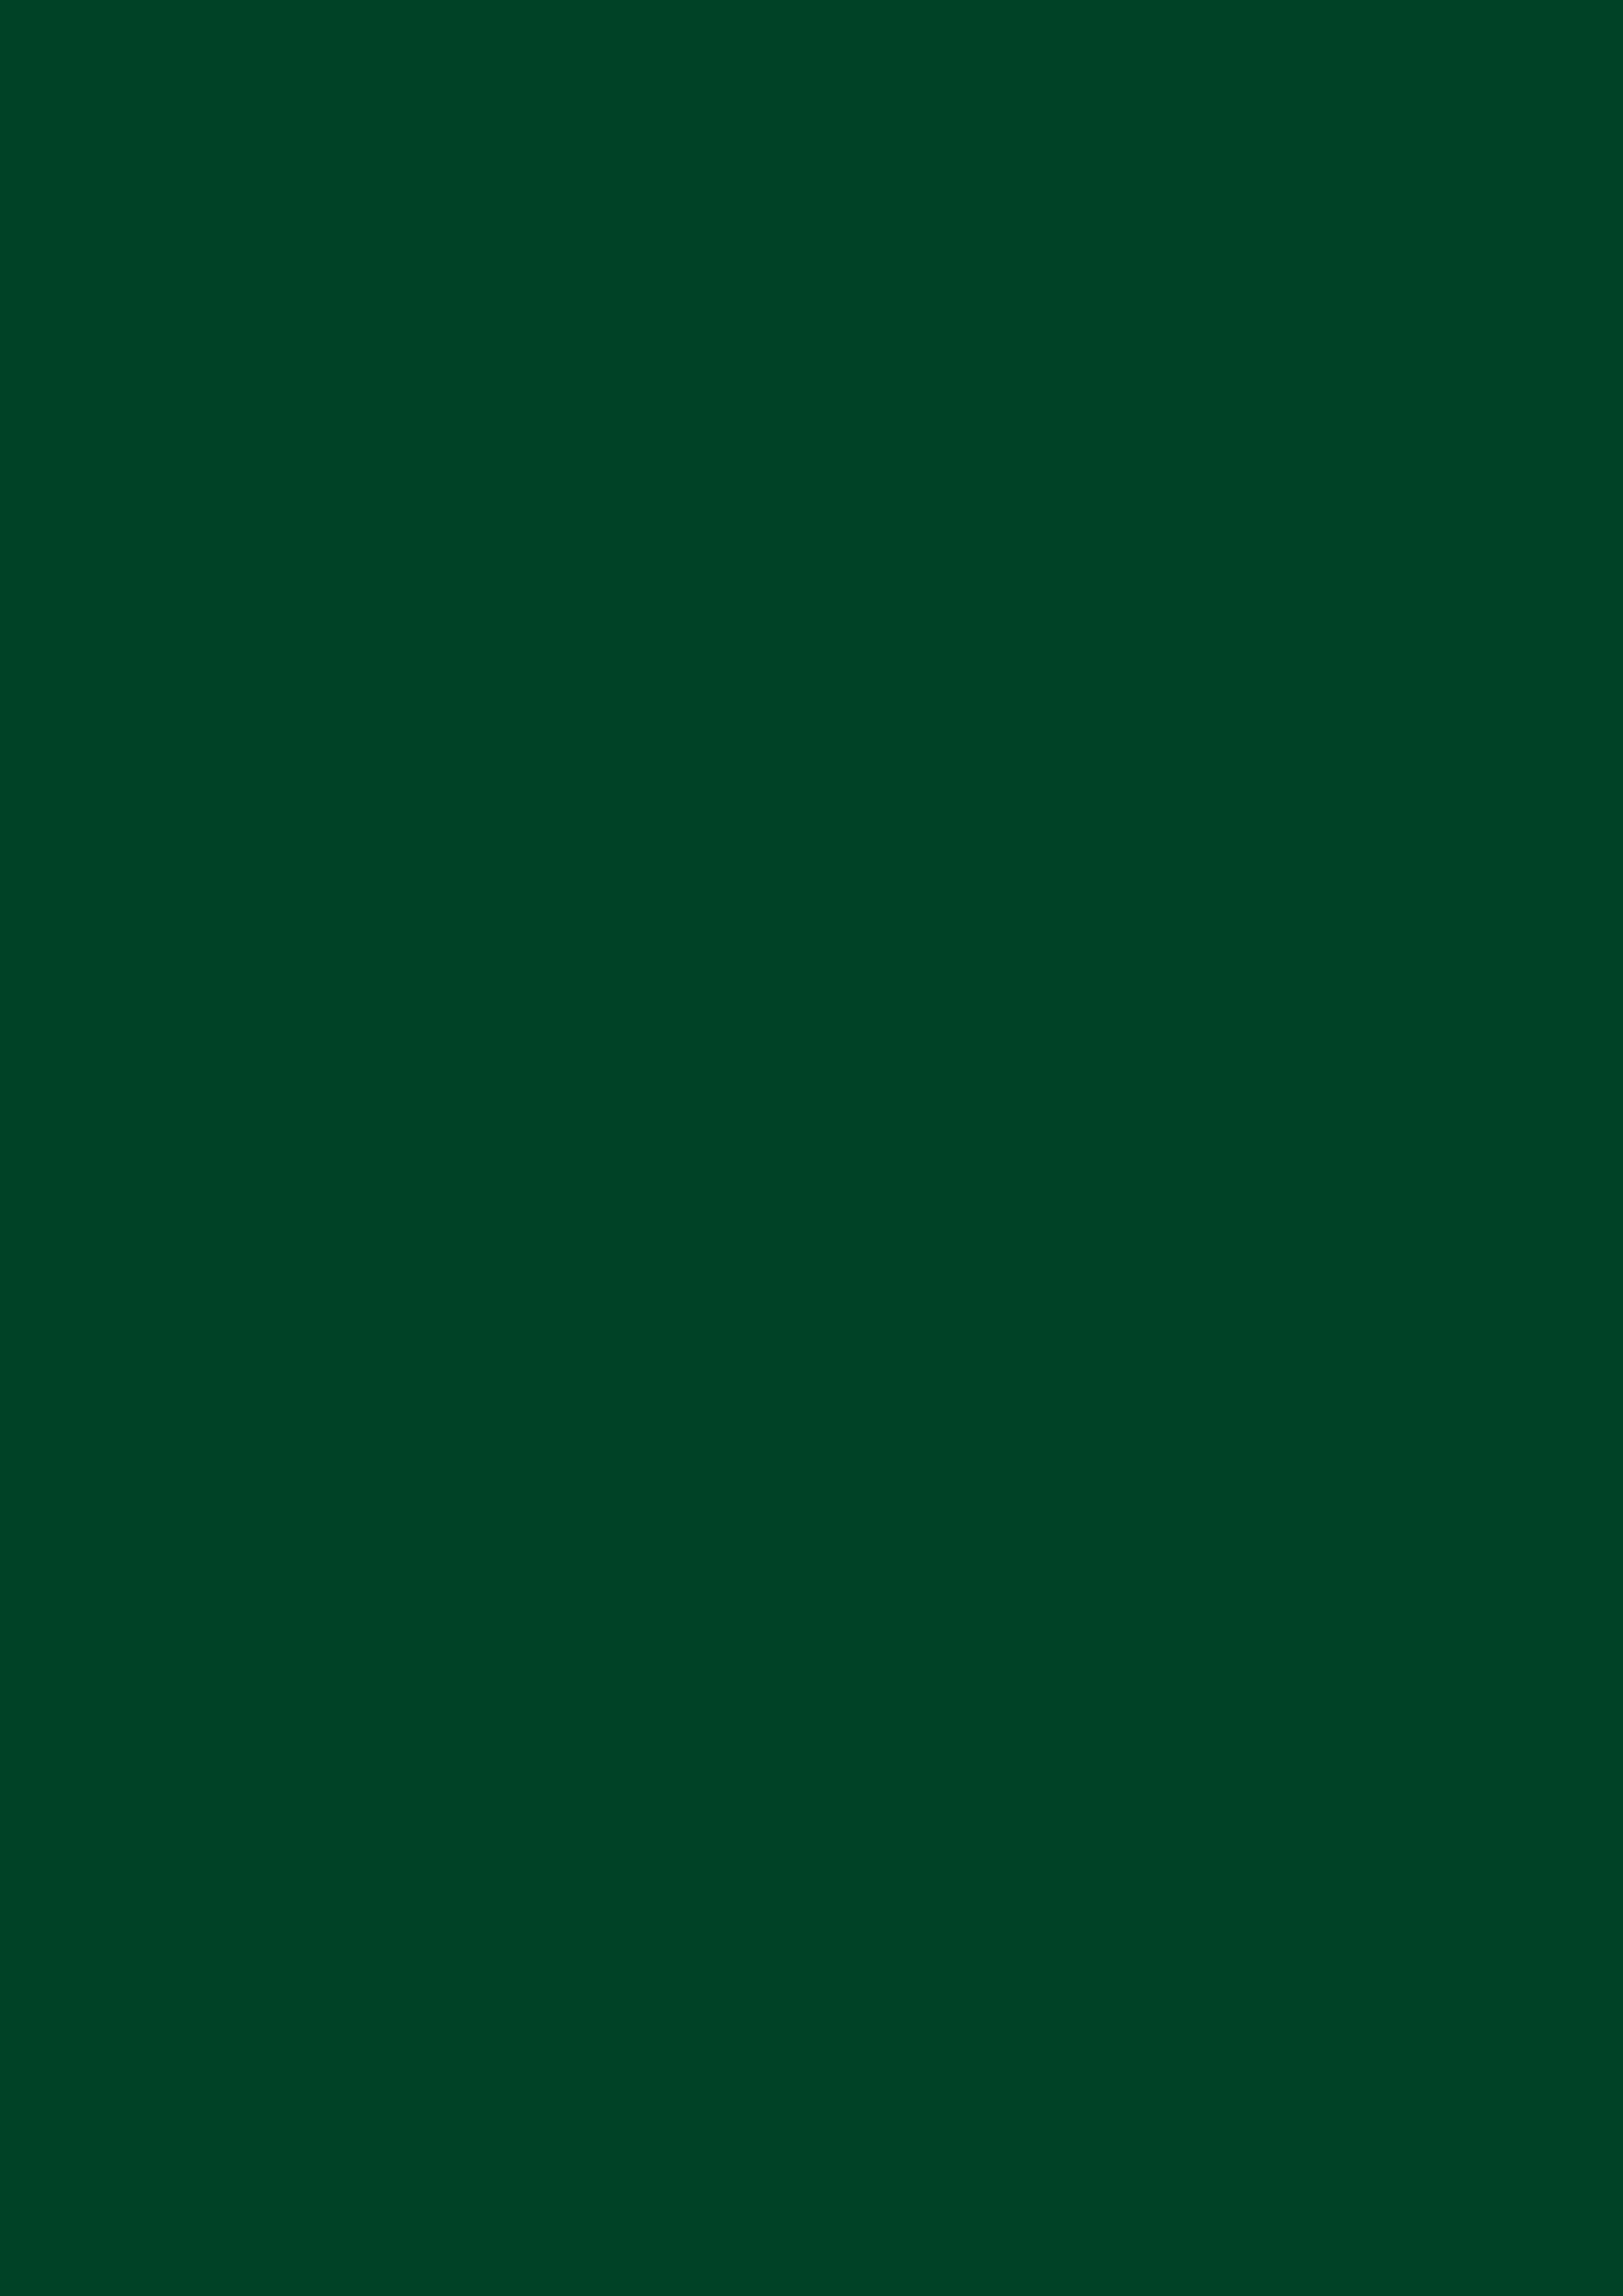 2480x3508 British Racing Green Solid Color Background